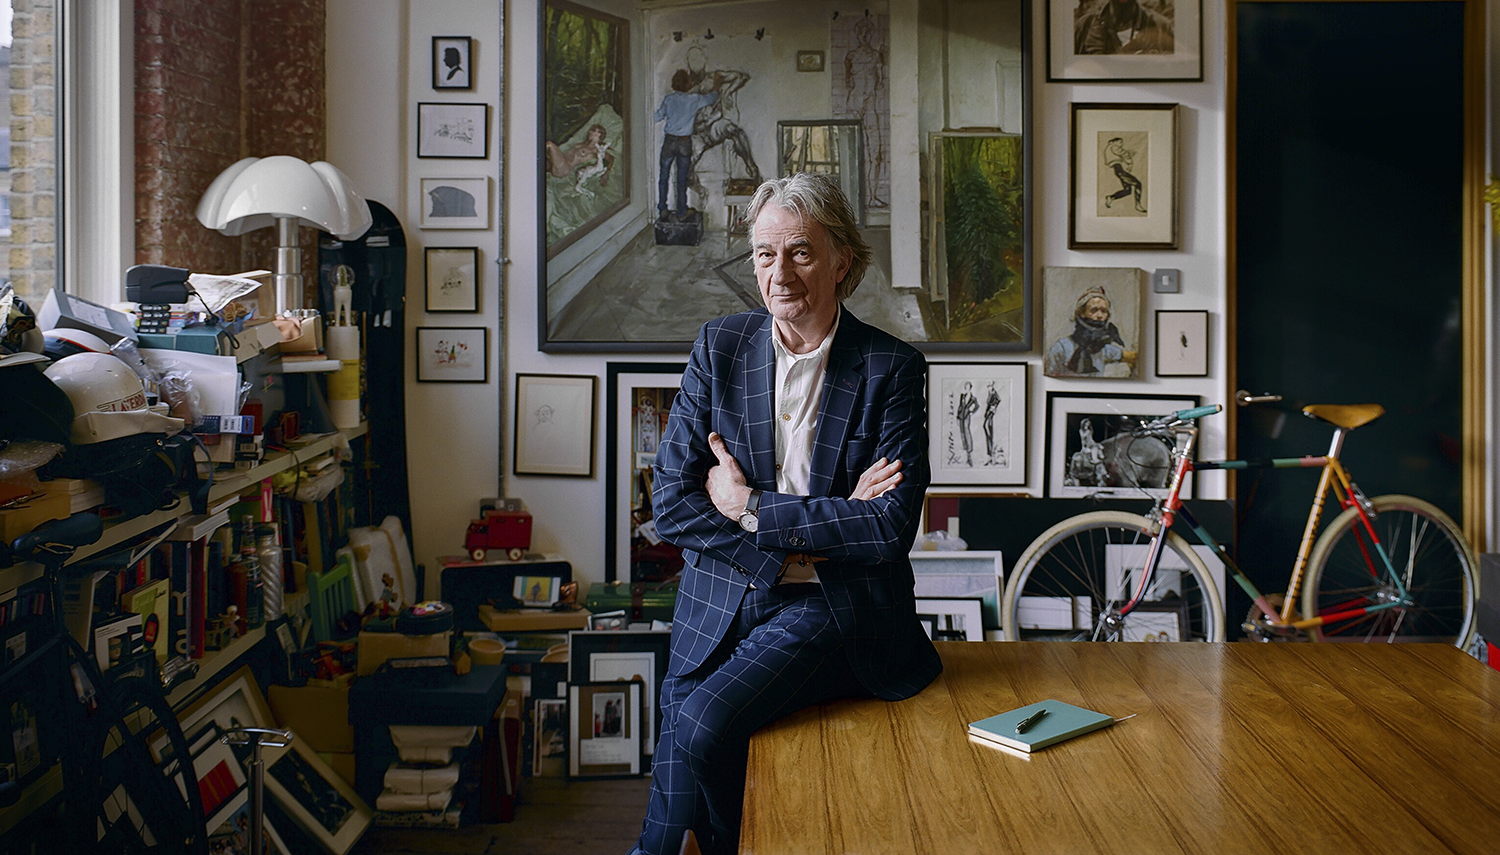 Paul Smith Is A One Man Brand